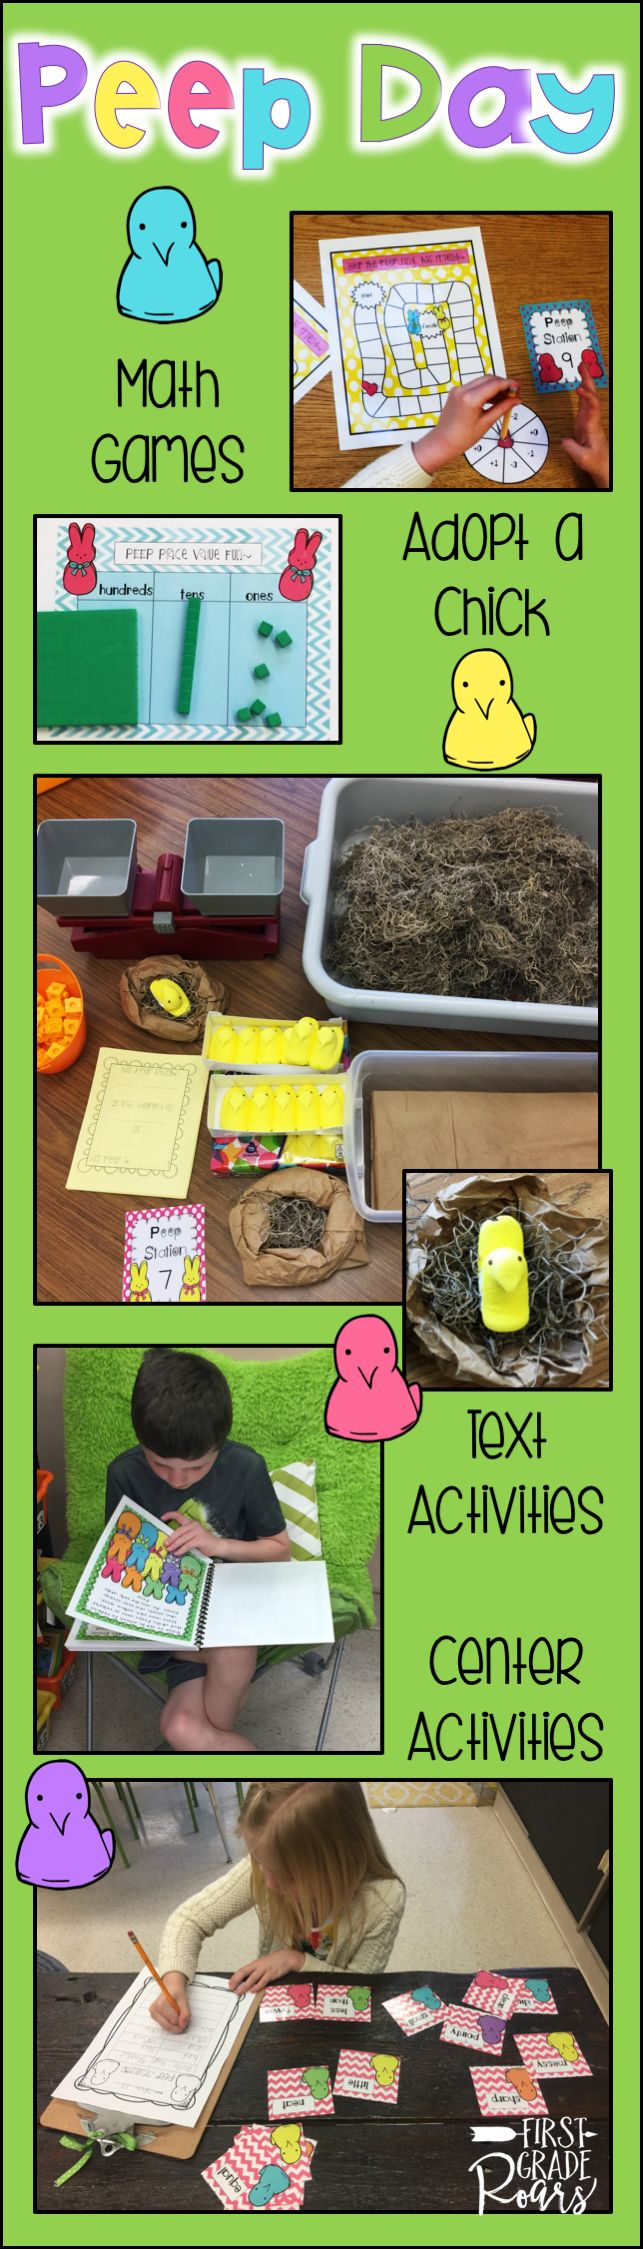 """This fun day will have your students engaged right before spring break or any time in the Spring.  Children will complete word work center activities for synonyms, antonyms, compound words, """"ee"""", writing, syllables and more.  Adopt a peep and make a nest for your peep.  Math games included too.  An original Peep Story in color or b/w with comprehension activities.  Center cards included for easy set up."""